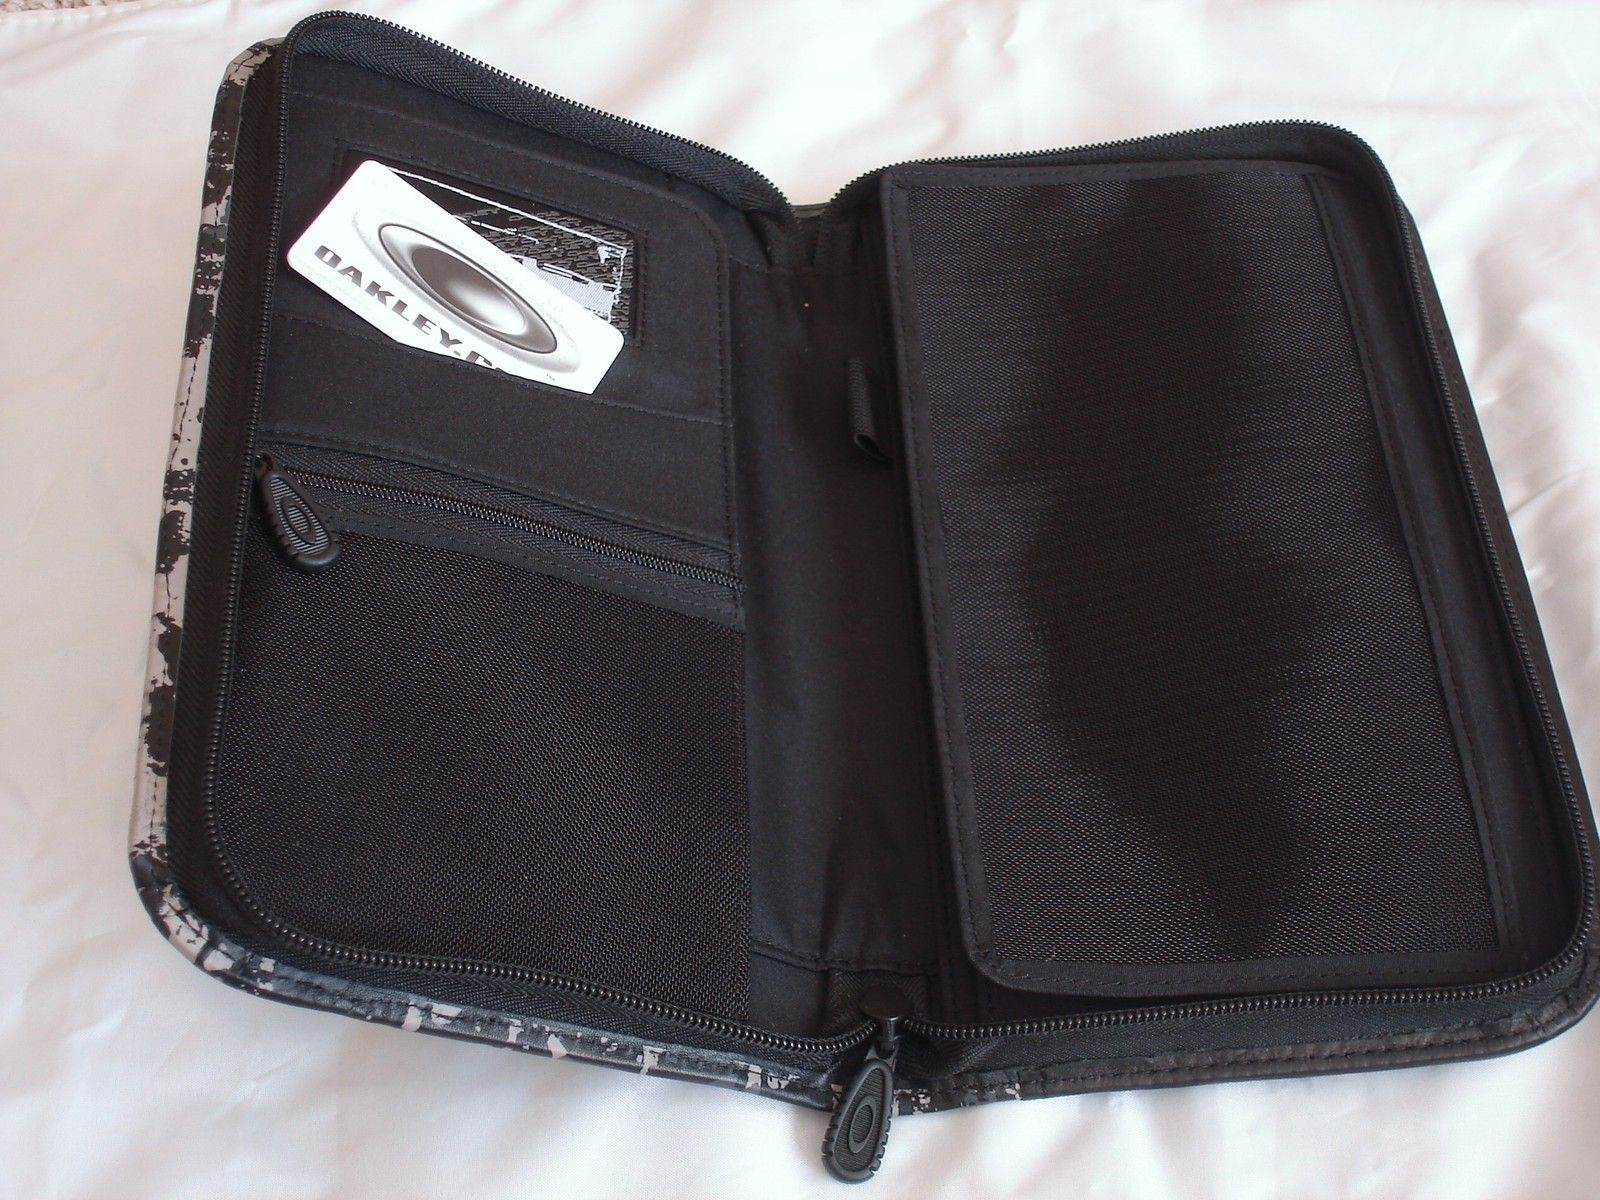 Flight Deck 3.0 Travel Wallet 95040-001 Black Camo - travel wallet 3.JPG